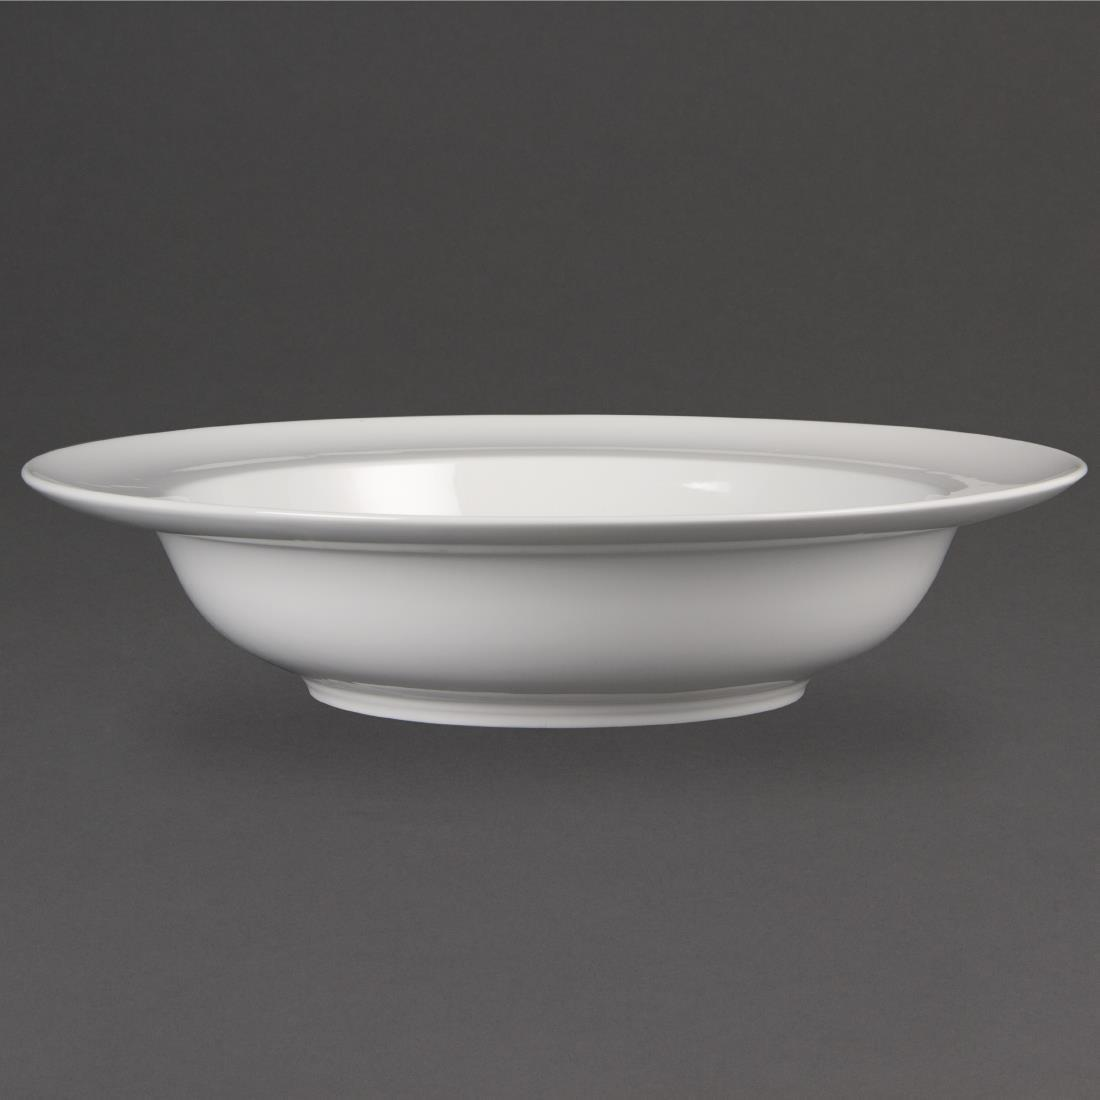 Olympia Whiteware Wide Rim Bowls 228mm 710ml 25oz